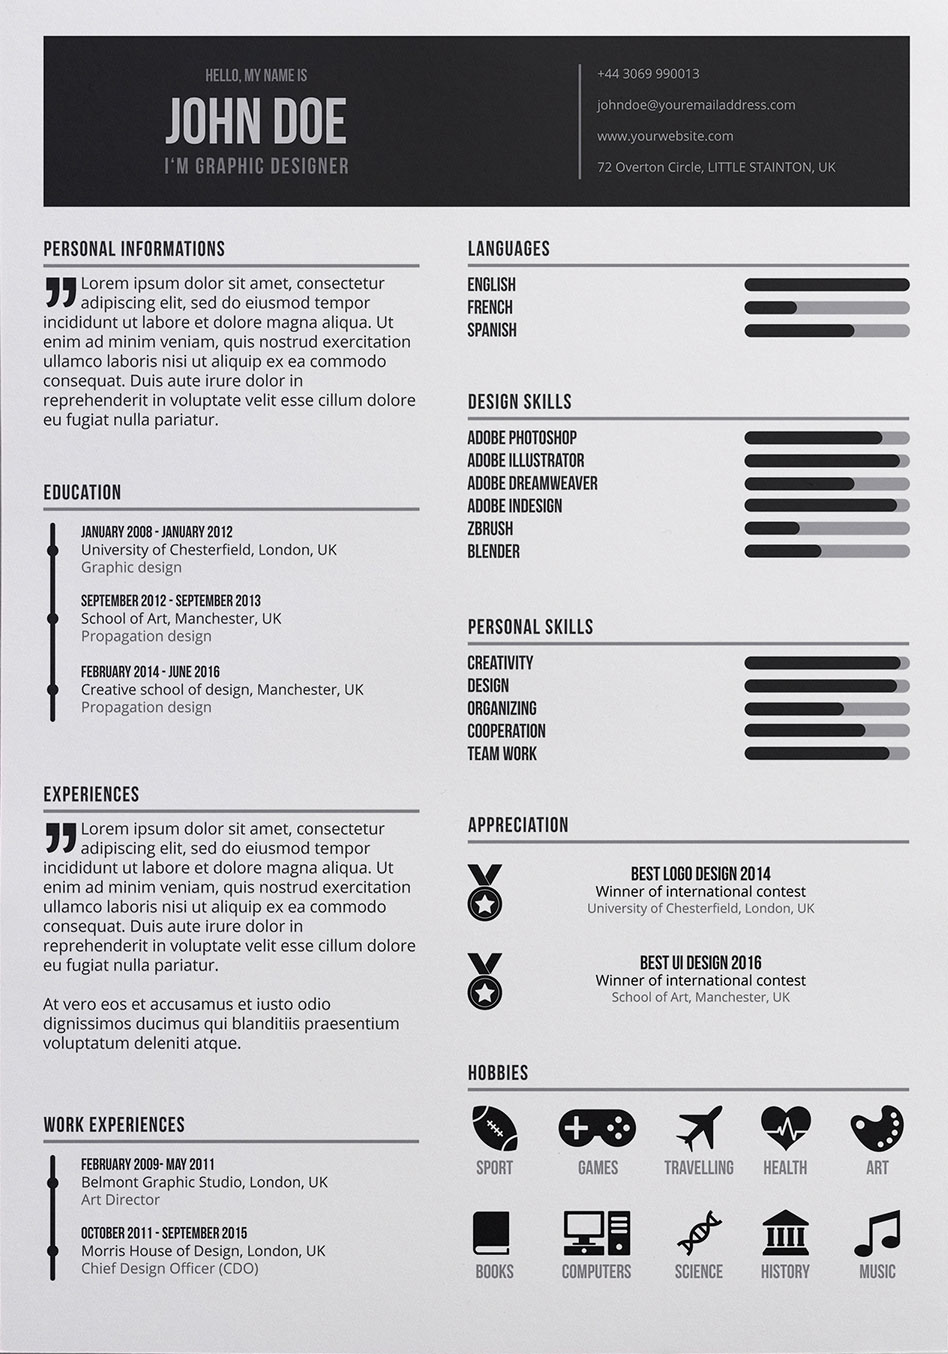 Free-Graphic-Designer-Resume-in-PSD-Format-3